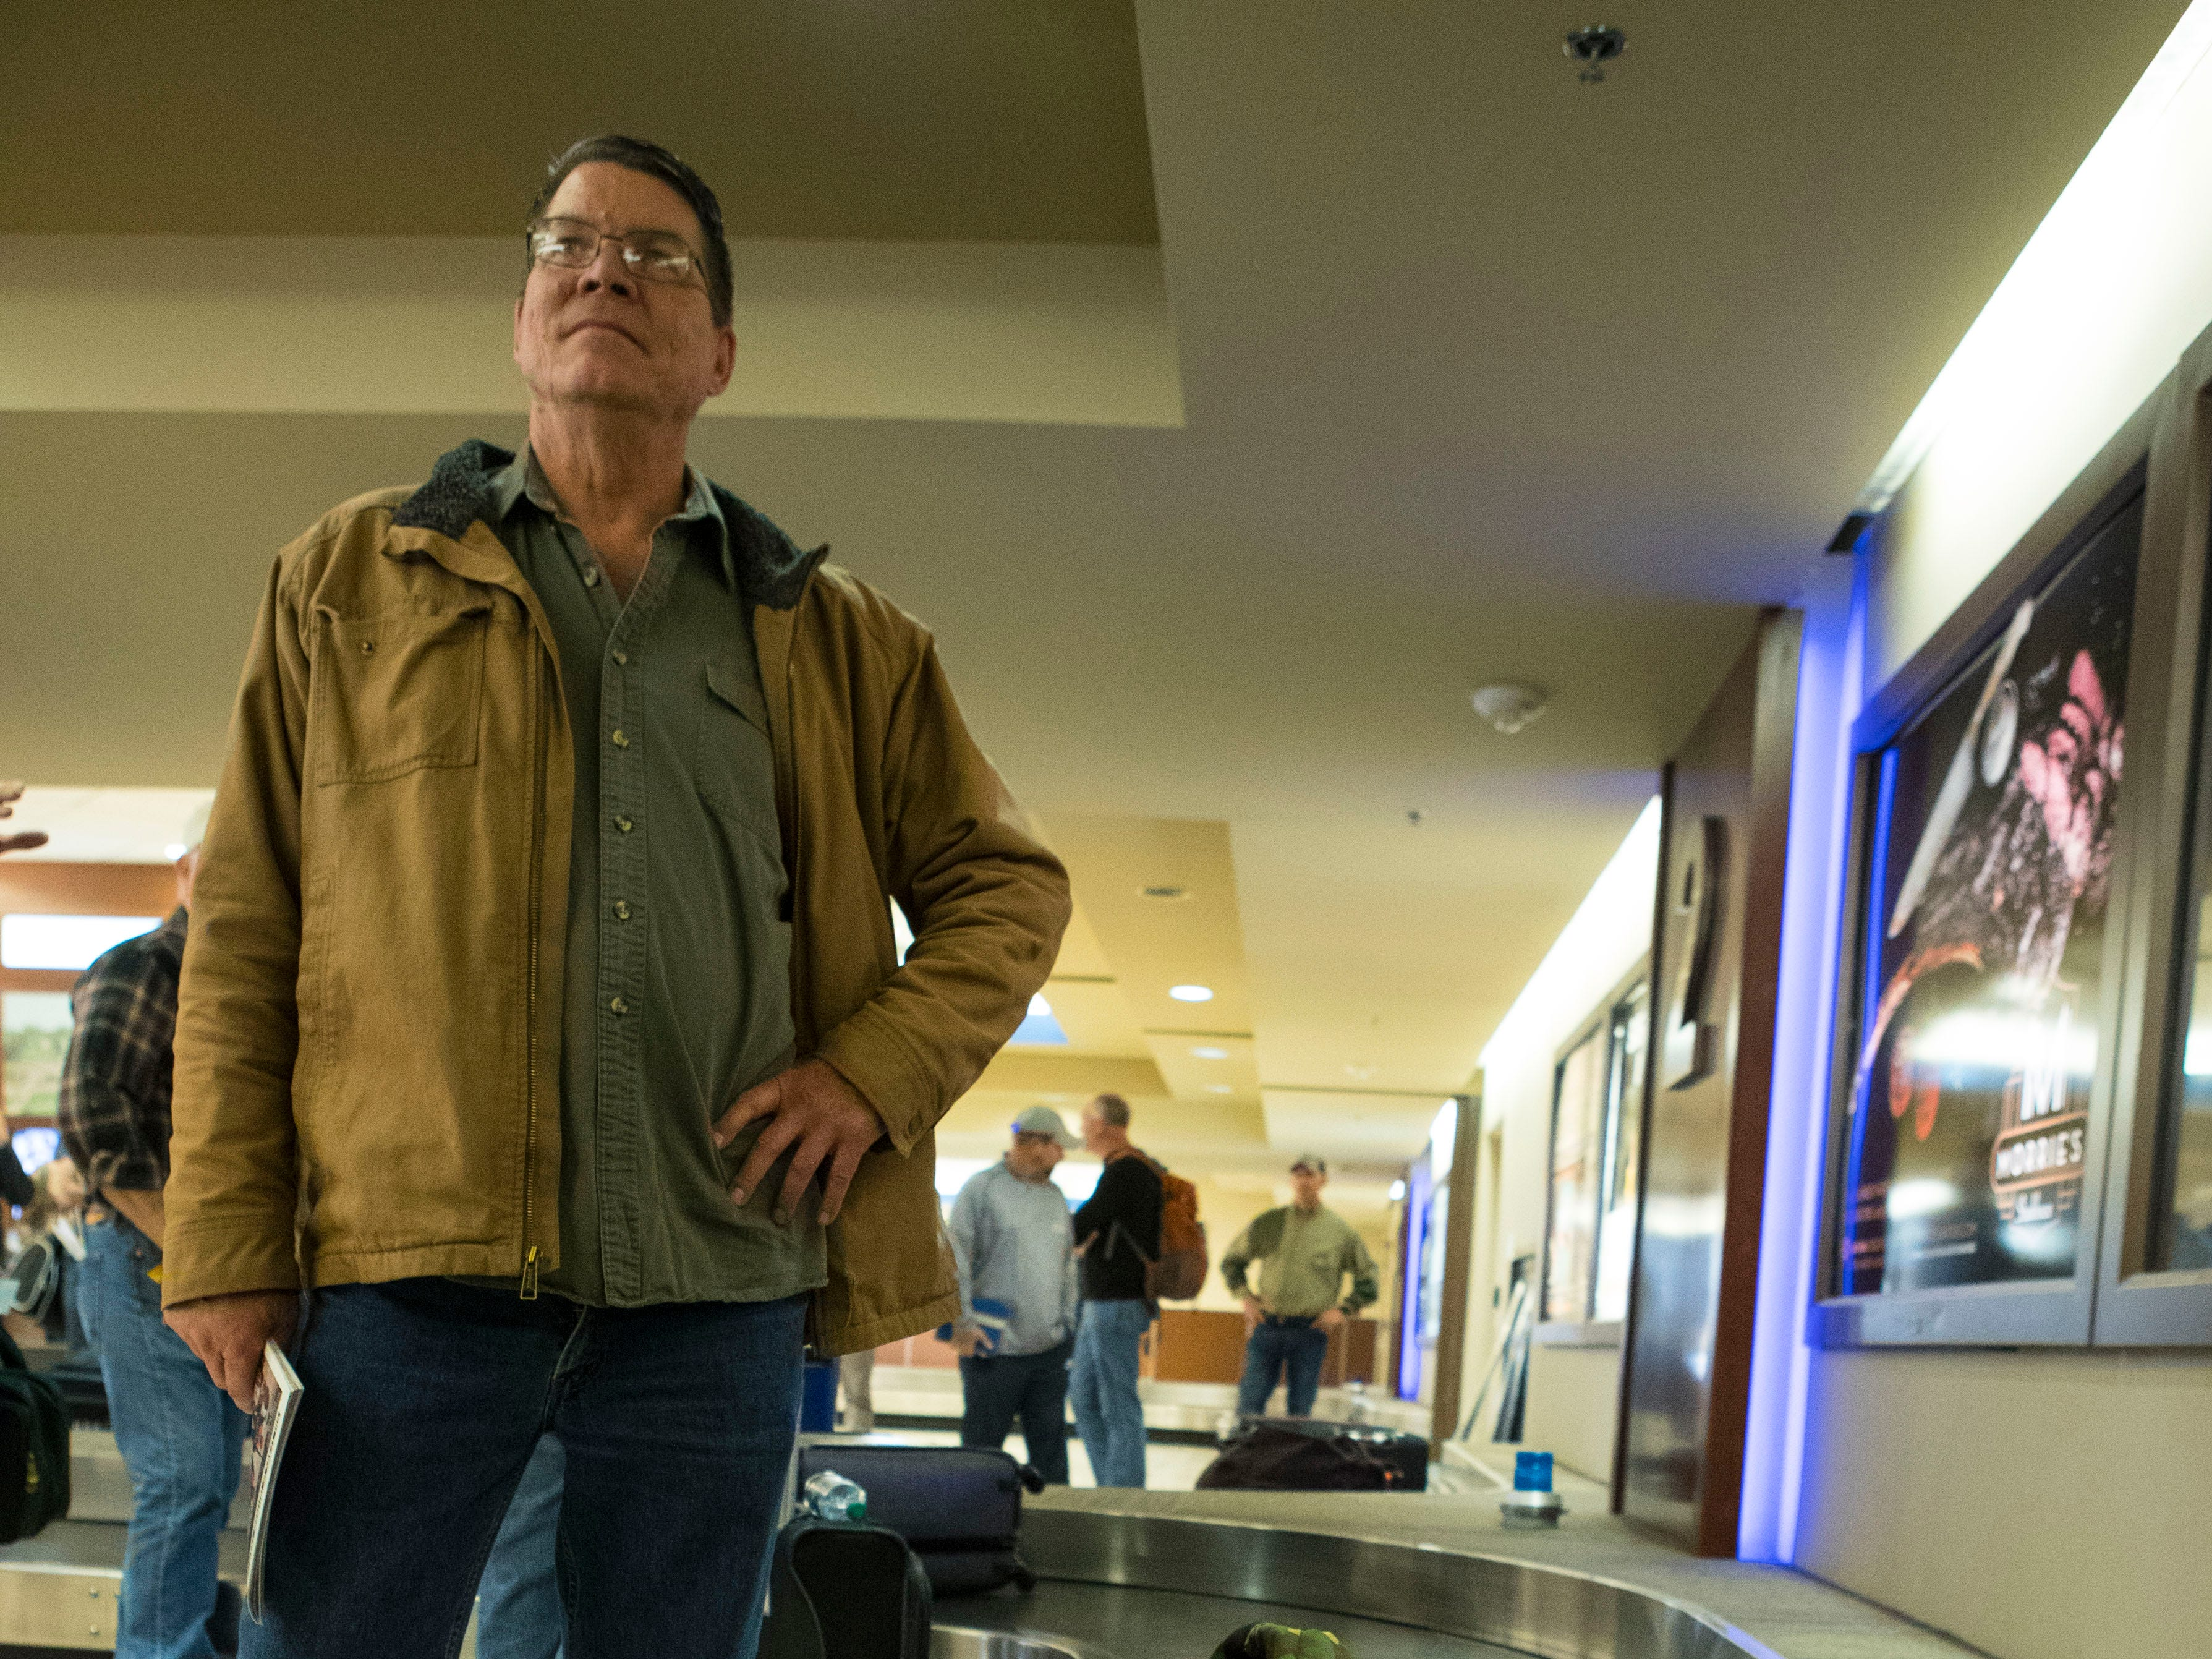 Pheasant hunter waits for his luggage at Sioux Falls Regional Airport Friday, Oct. 19, 2018.